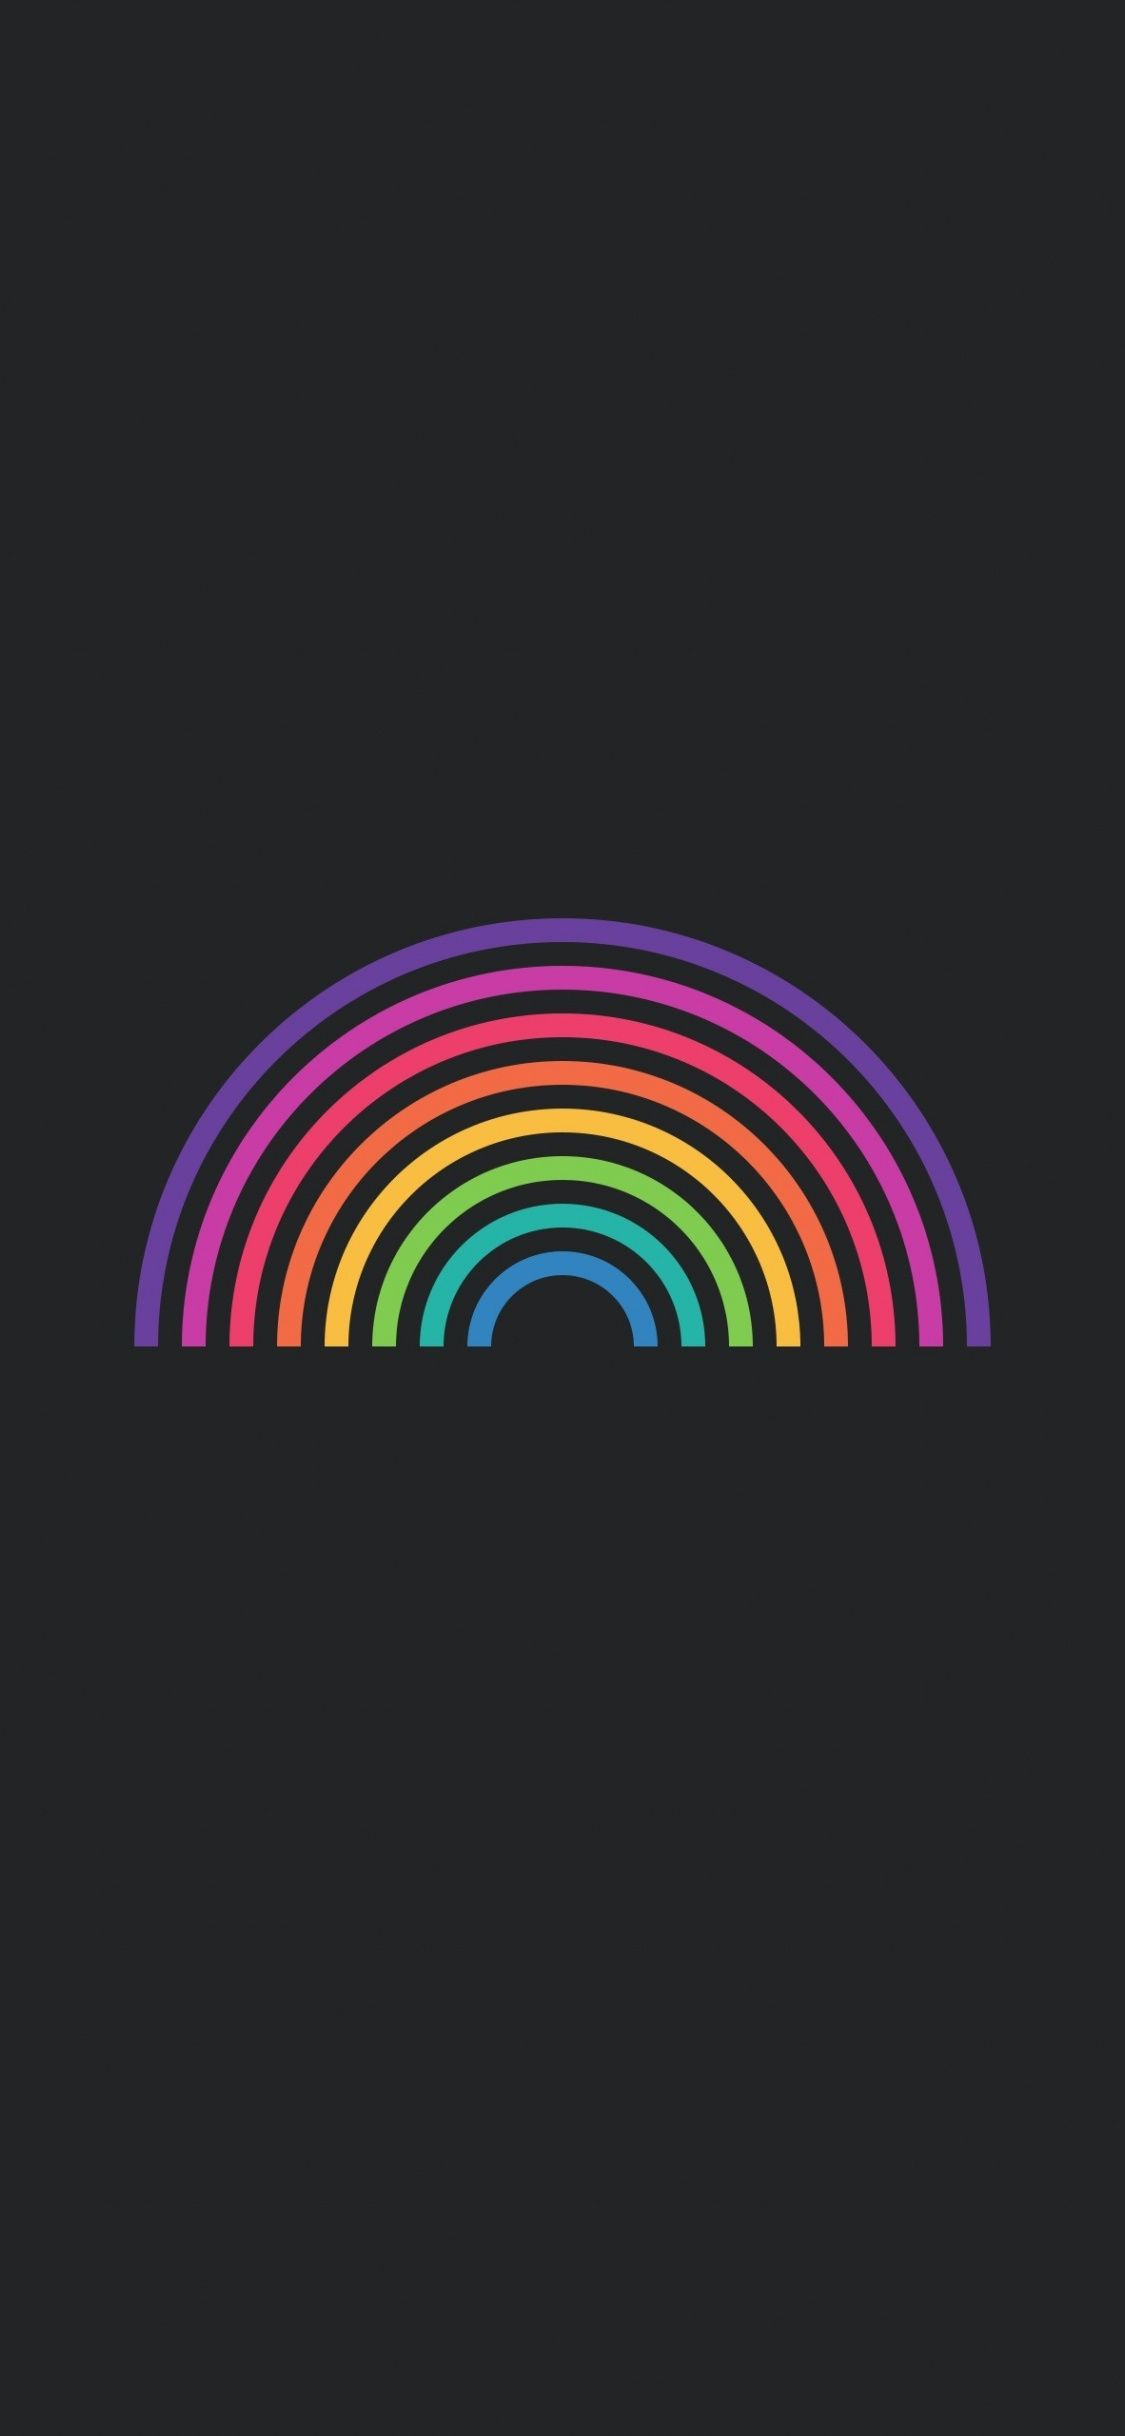 Rainbow Iphone Wallpapers Wallpaper Cave With Images Rainbow Wallpaper